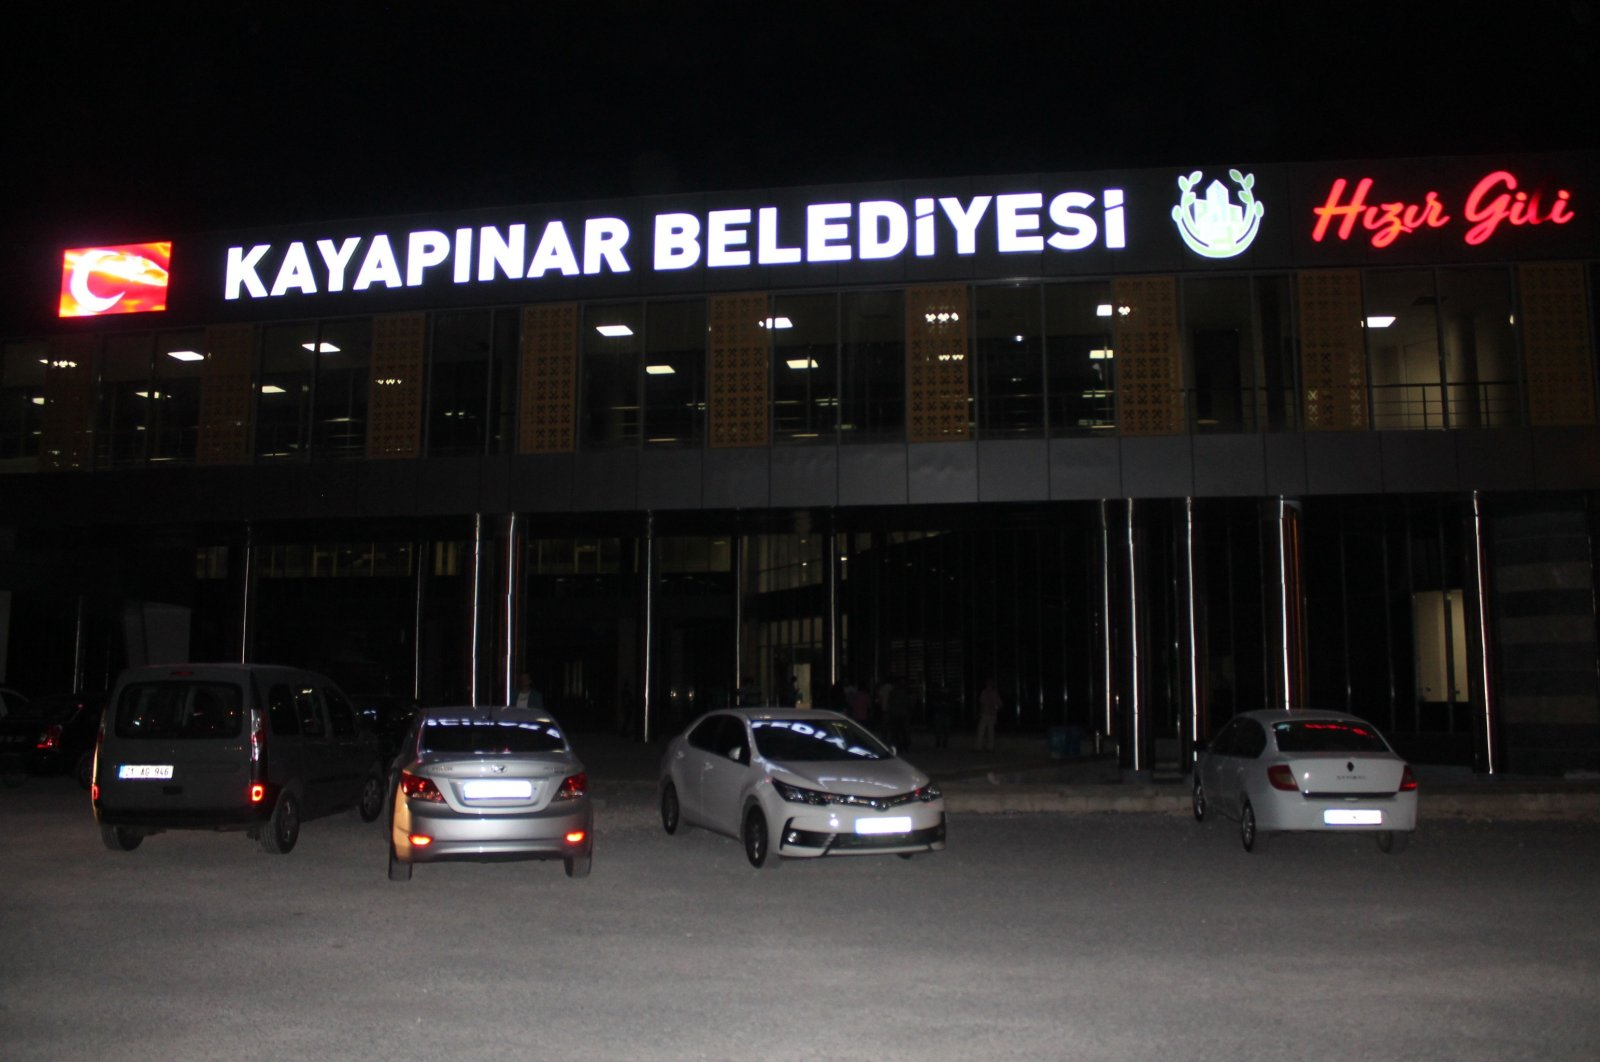 Vehicles are seen in front of the Kayapınar District Municipality building in Diyarbakır, Aug. 20, 2019. (Sabah File Photo)